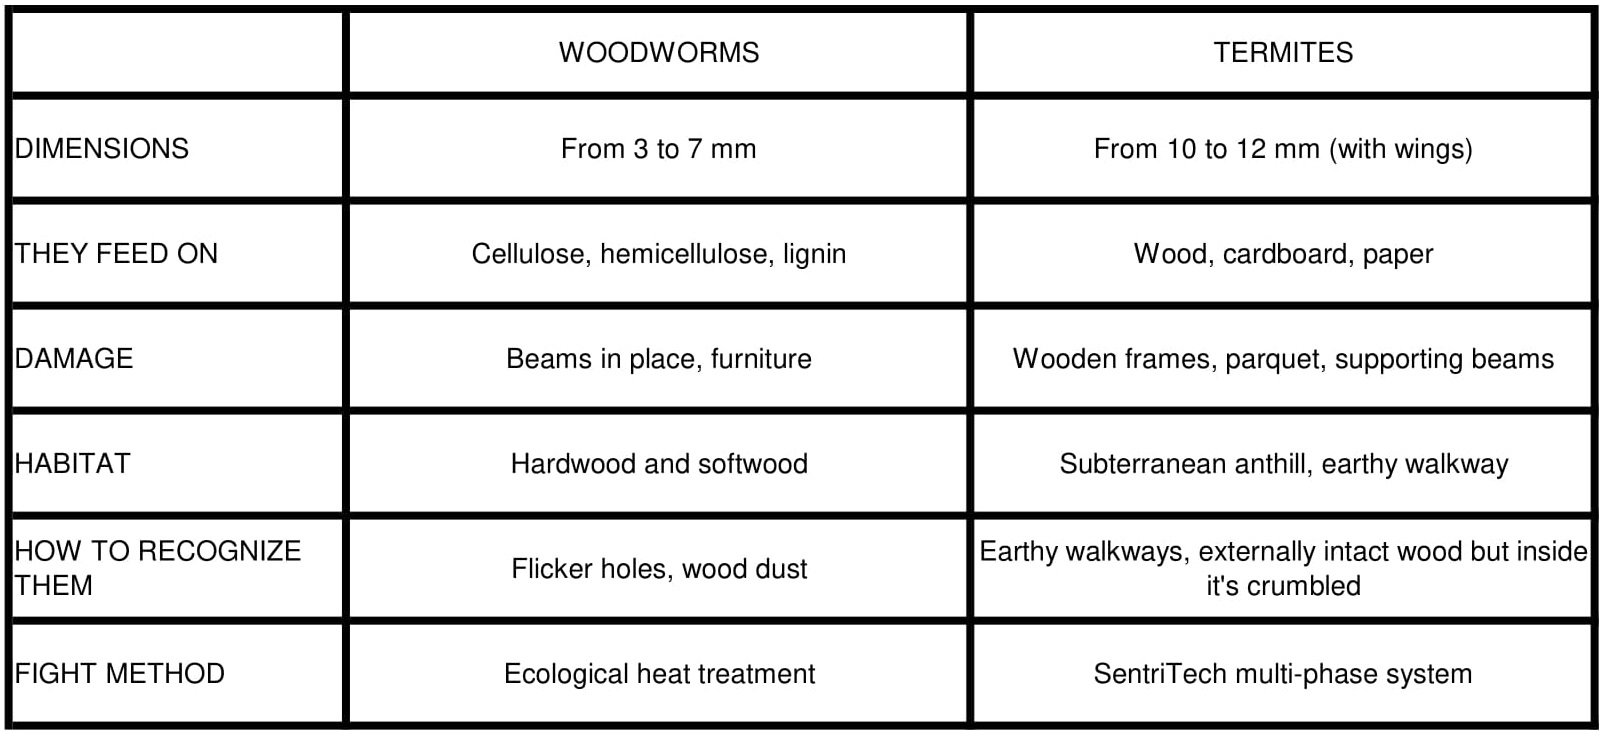 The main differences between Termites and Woodworms infestations